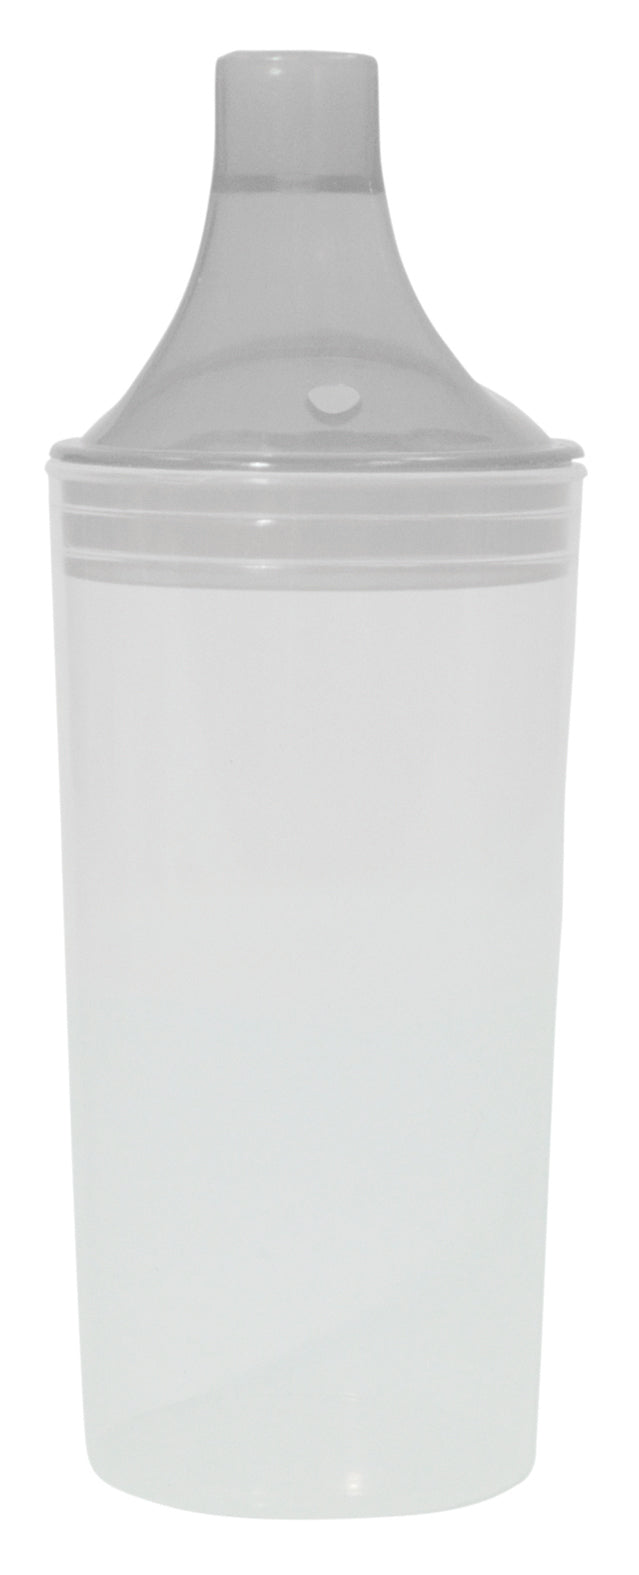 Drinking Cup with Two Spouts (Clear Colour)